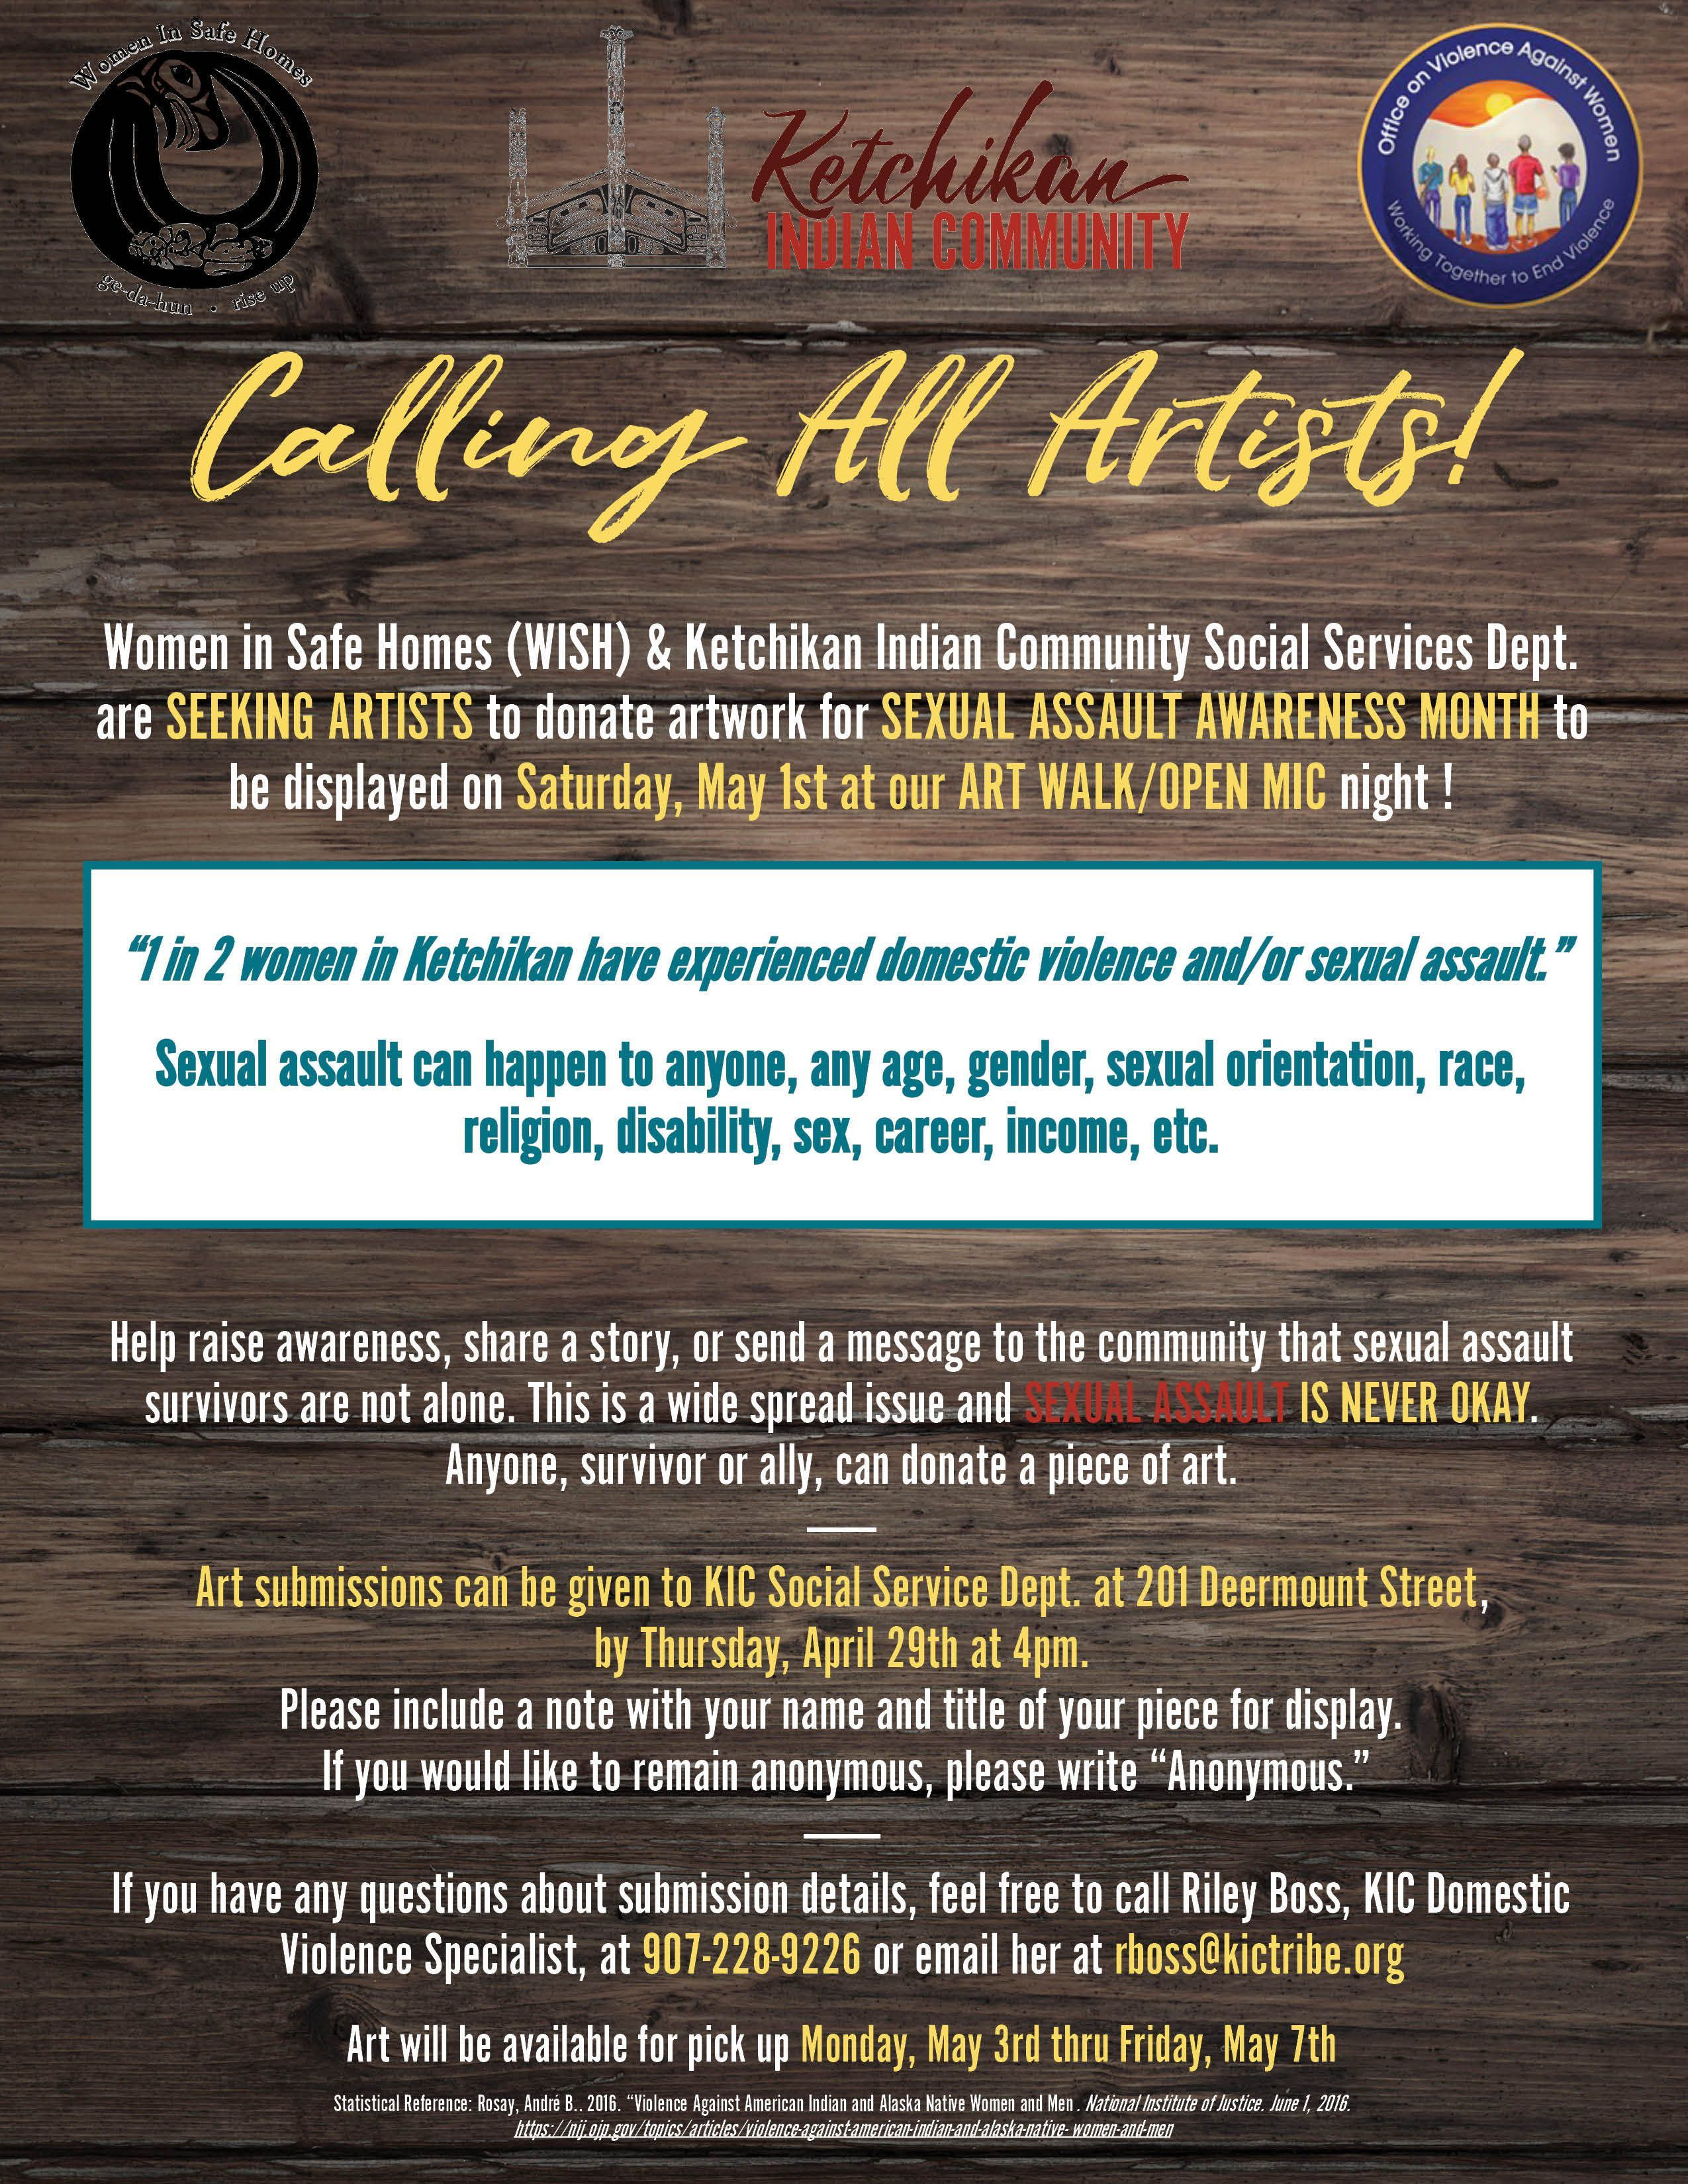 Calling all Artists to submit work for display Sexual Assault Awareness Month